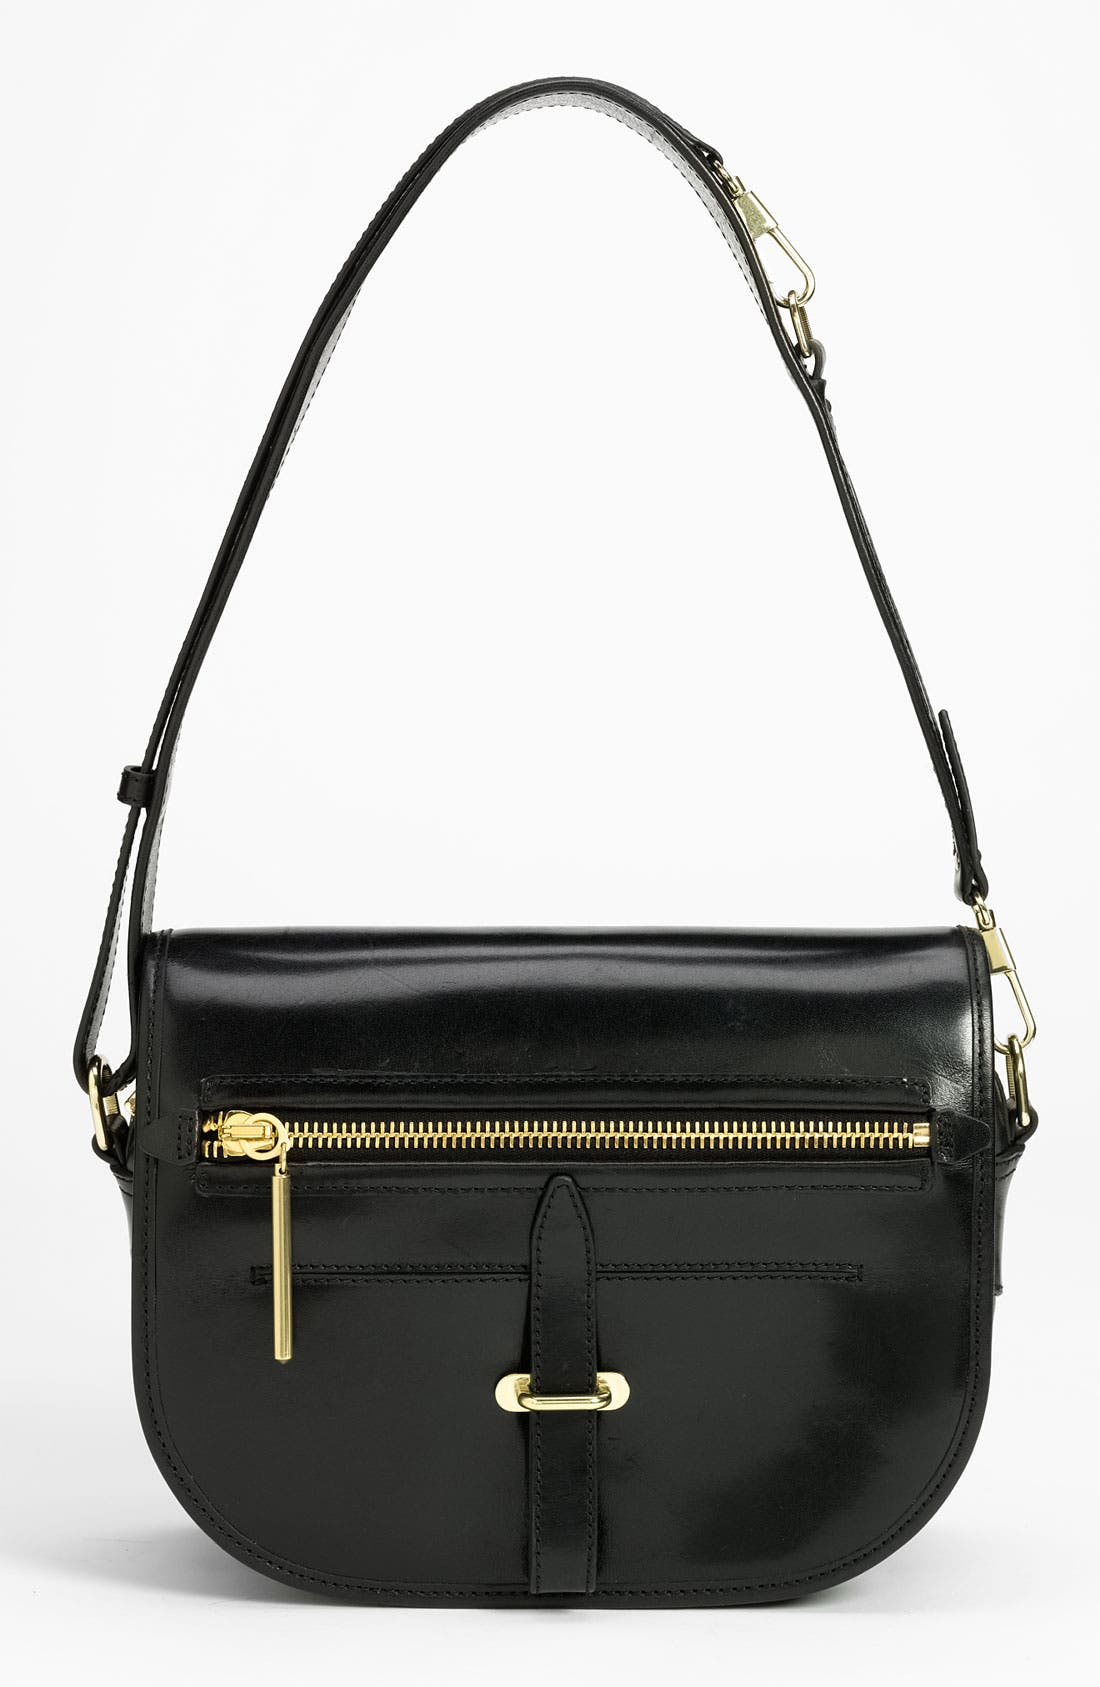 Alternate Image 1 Selected - 3.1 Phillip Lim 'Vendetta - Large' Leather Shoulder Bag